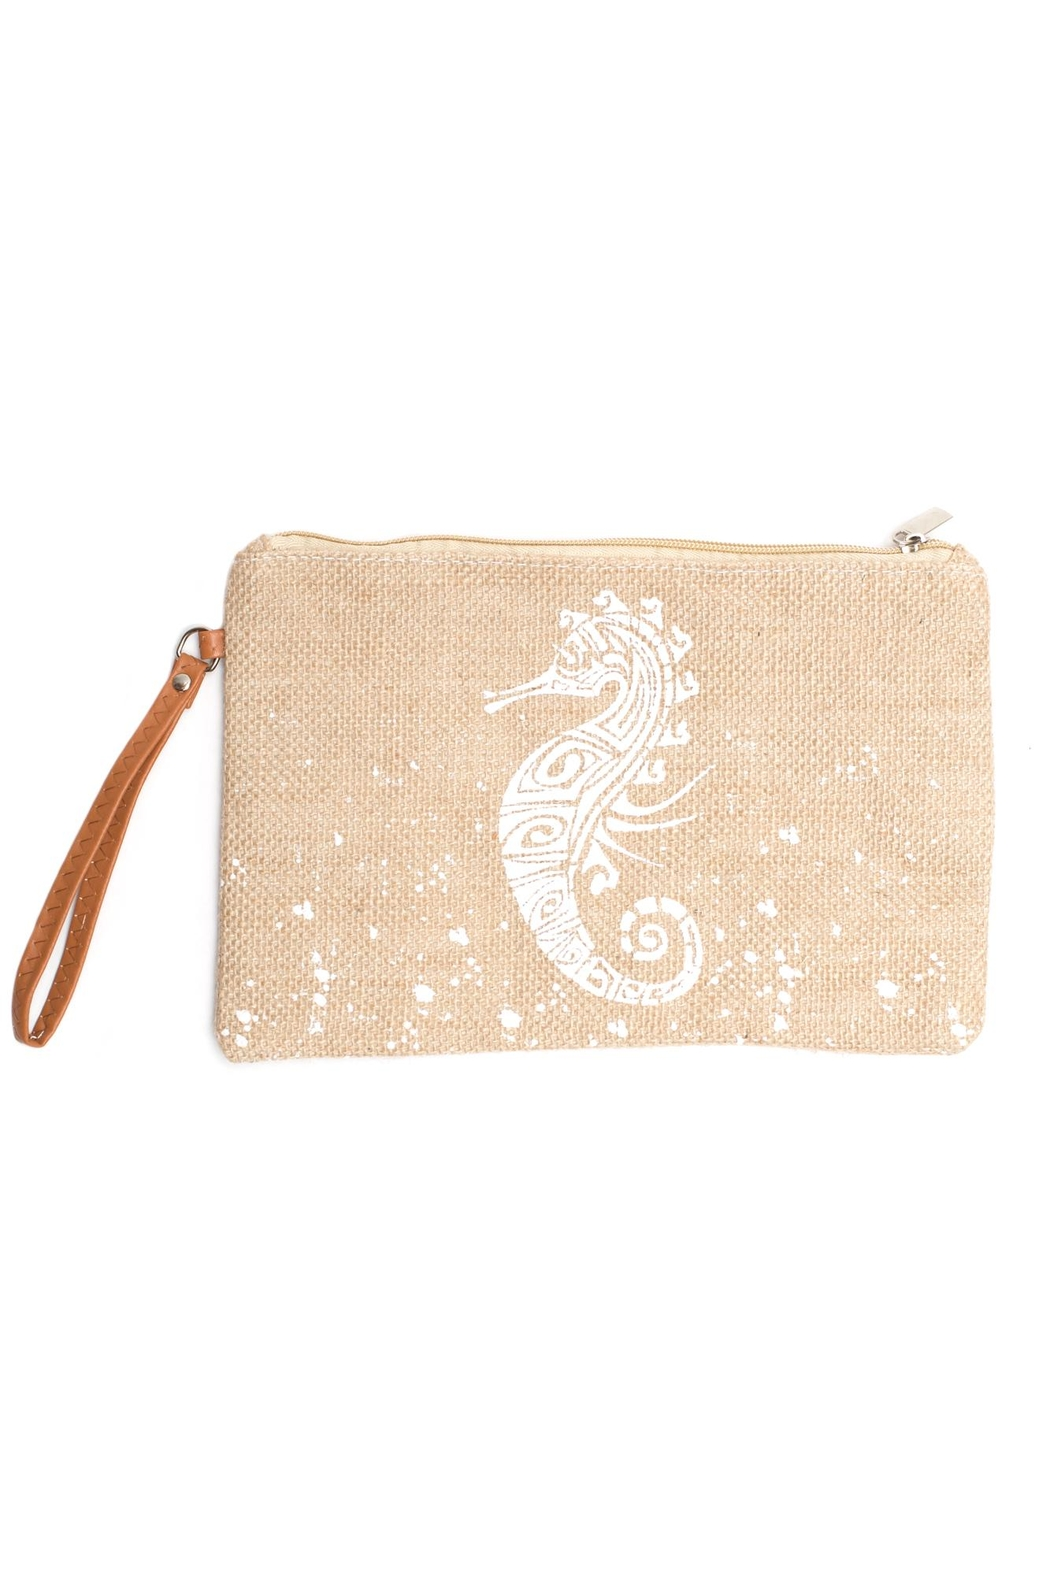 May 23 Seahorse Mini Clutch - Main Image